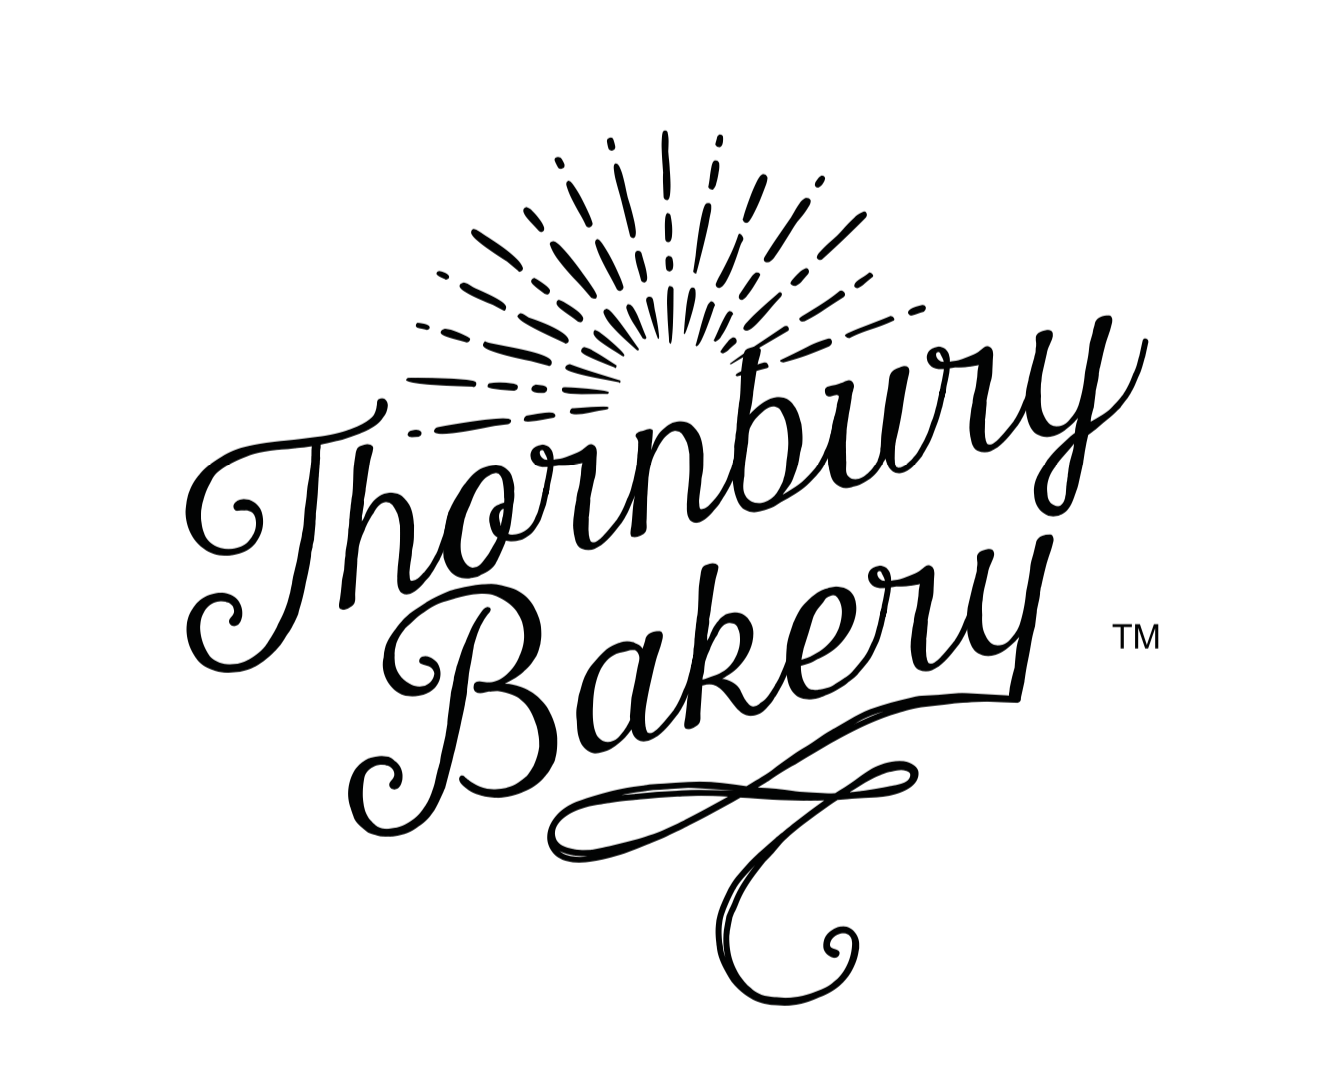 Thornbury Bakery